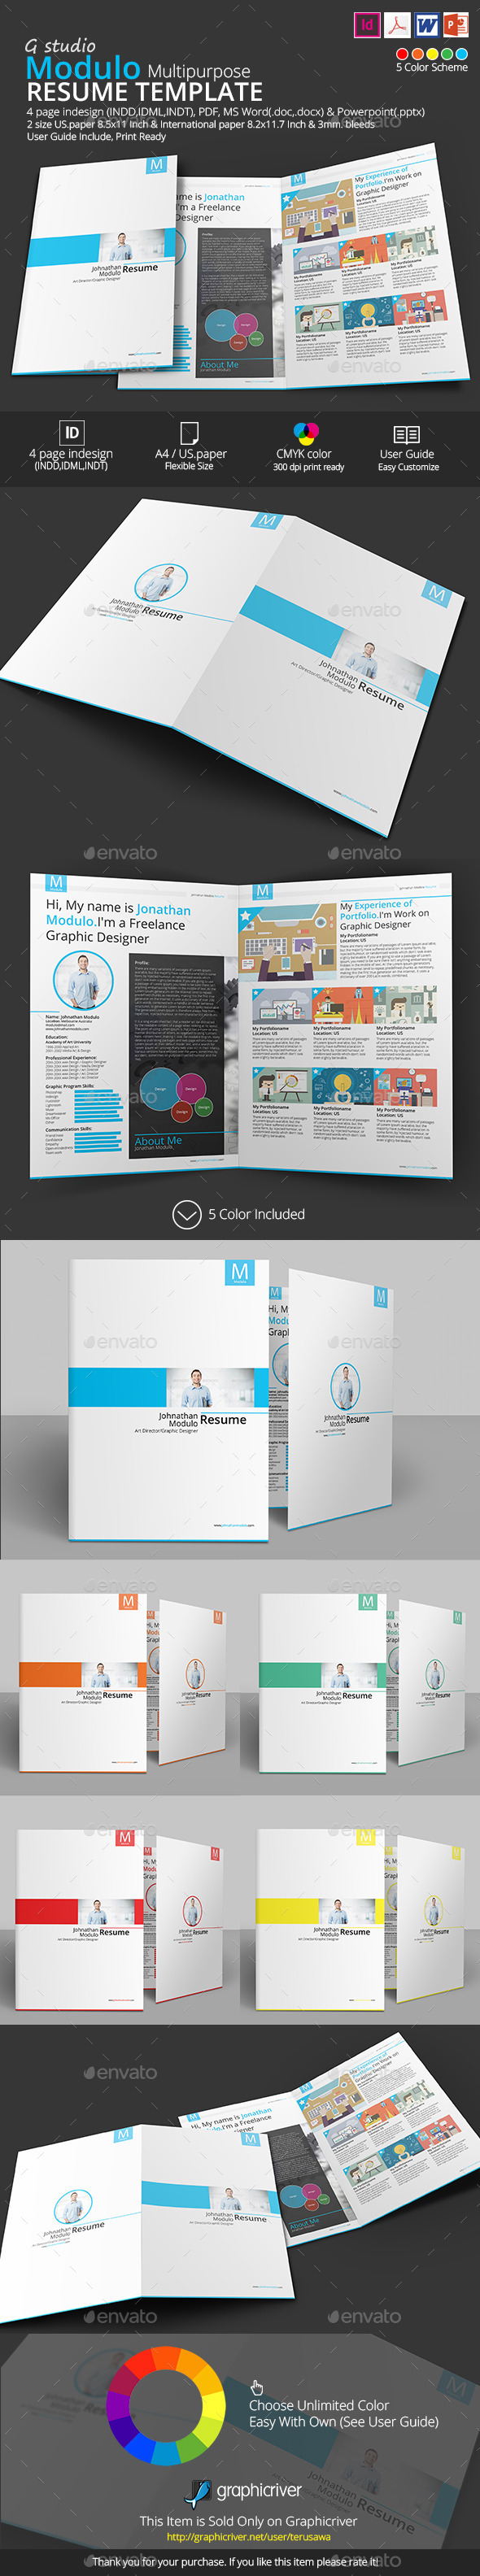 GraphicRiver Modulo Resume Template 9586318